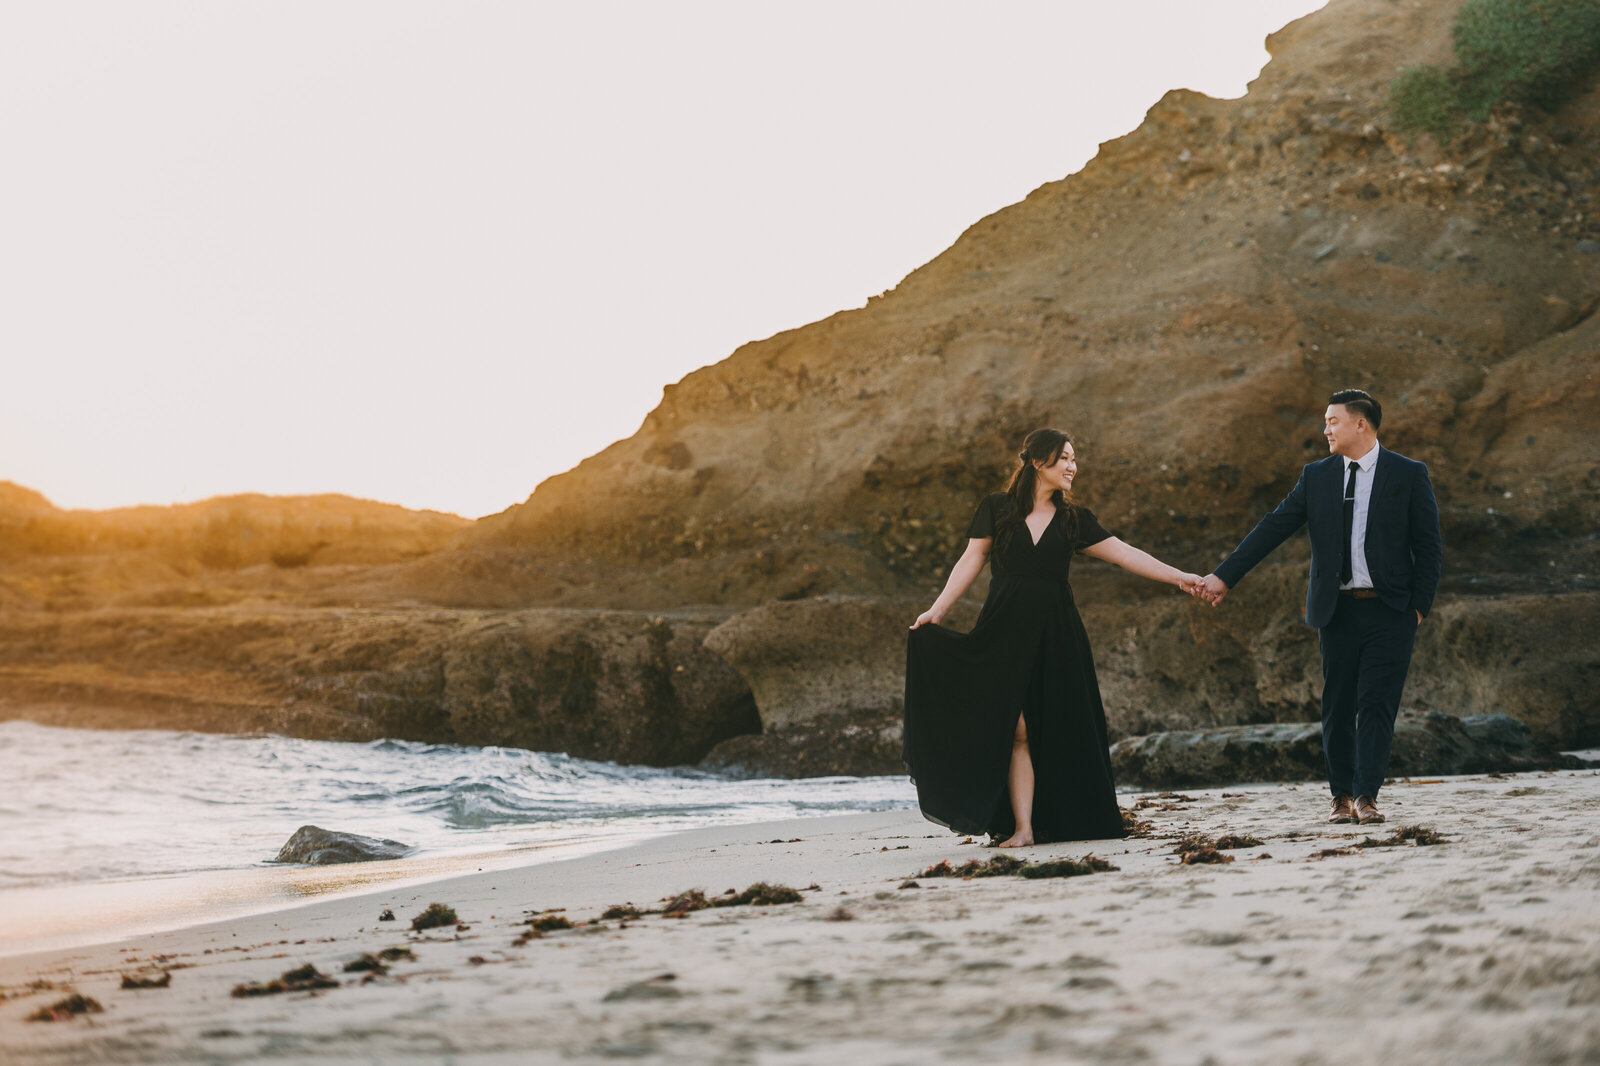 laguna beach engagement photography 23